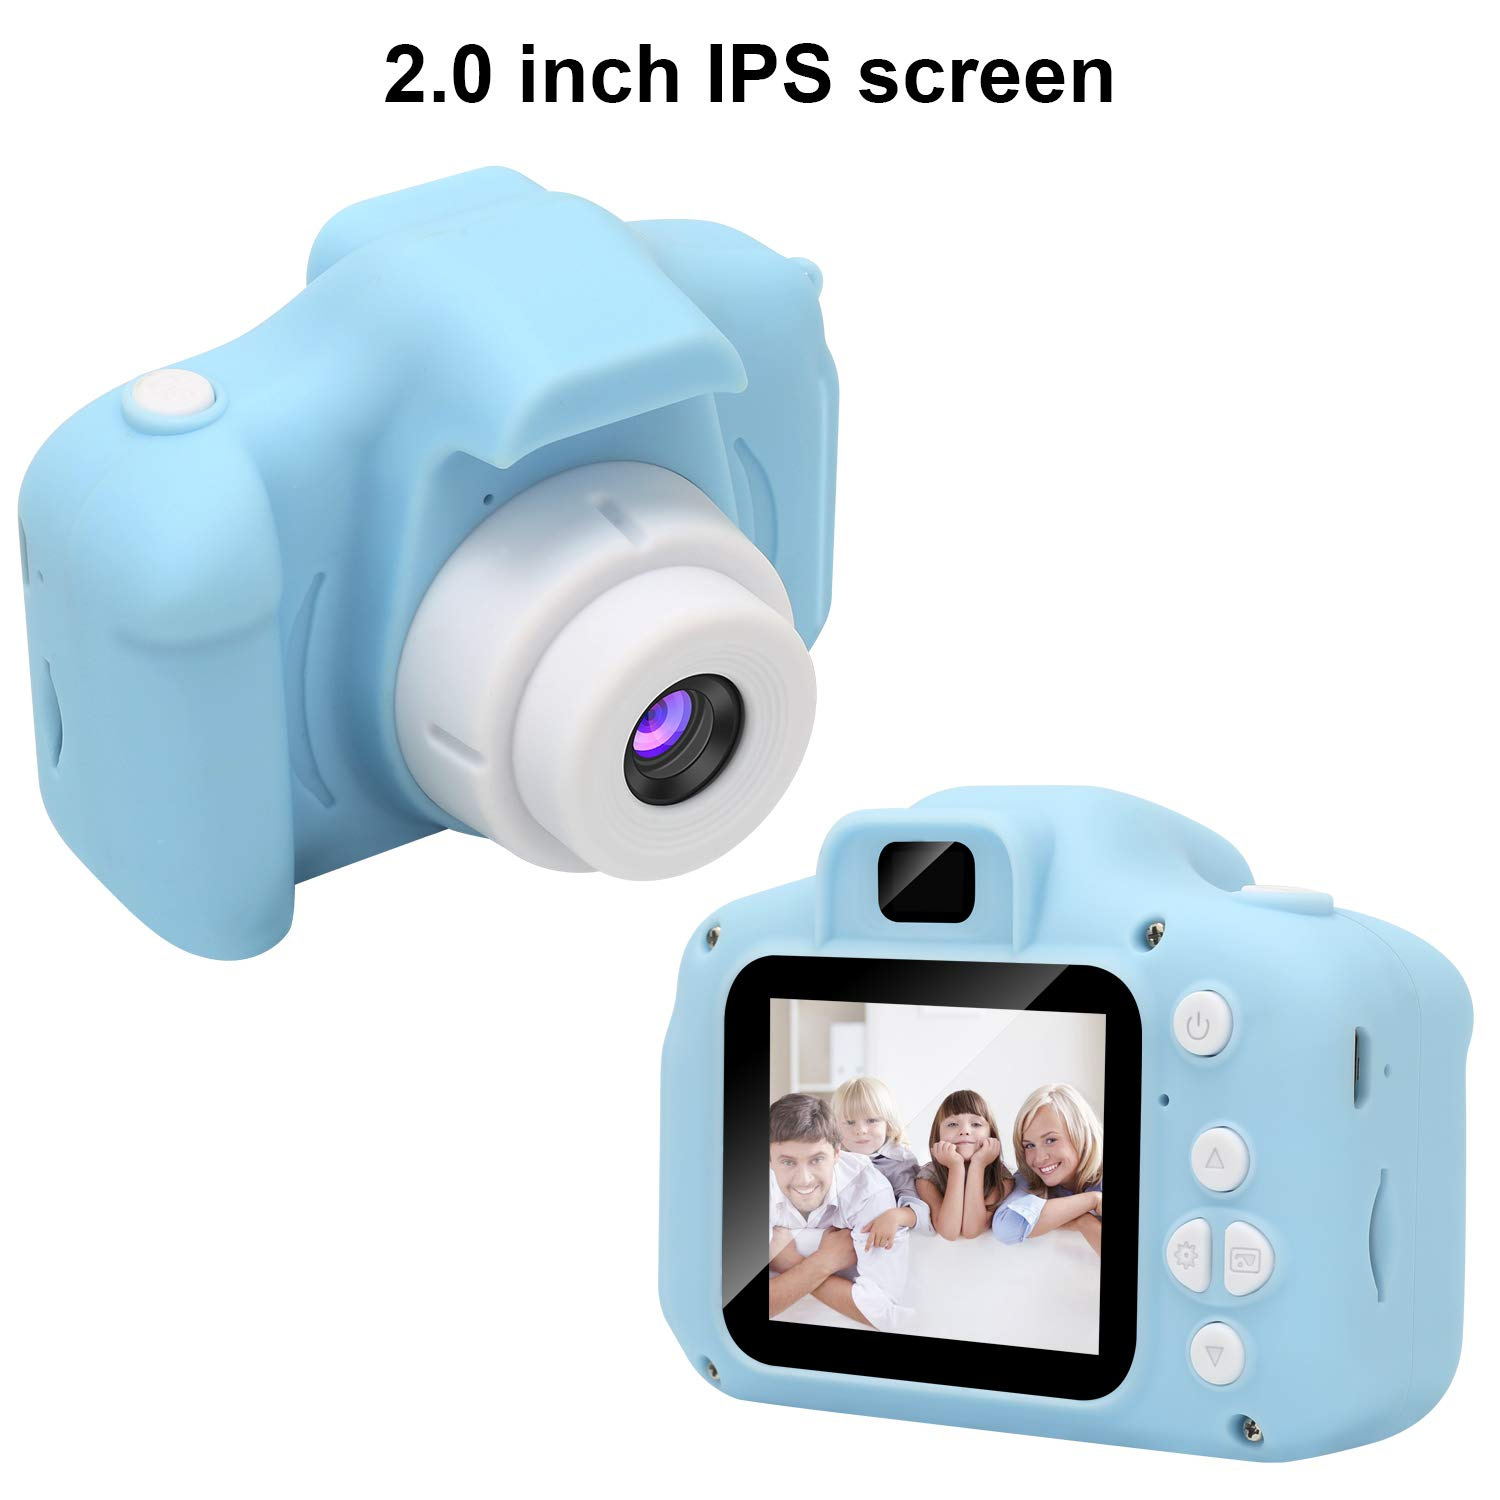 DDGG Kids Digital Camera Toy Camera HD Kids Video Cameras Shockproof Cameras with Soft Silicone Shell Gift for 4-10 Years Old Girls Boys Party Outdoor Play (16G SD Card Included) by DDGG (Image #9)